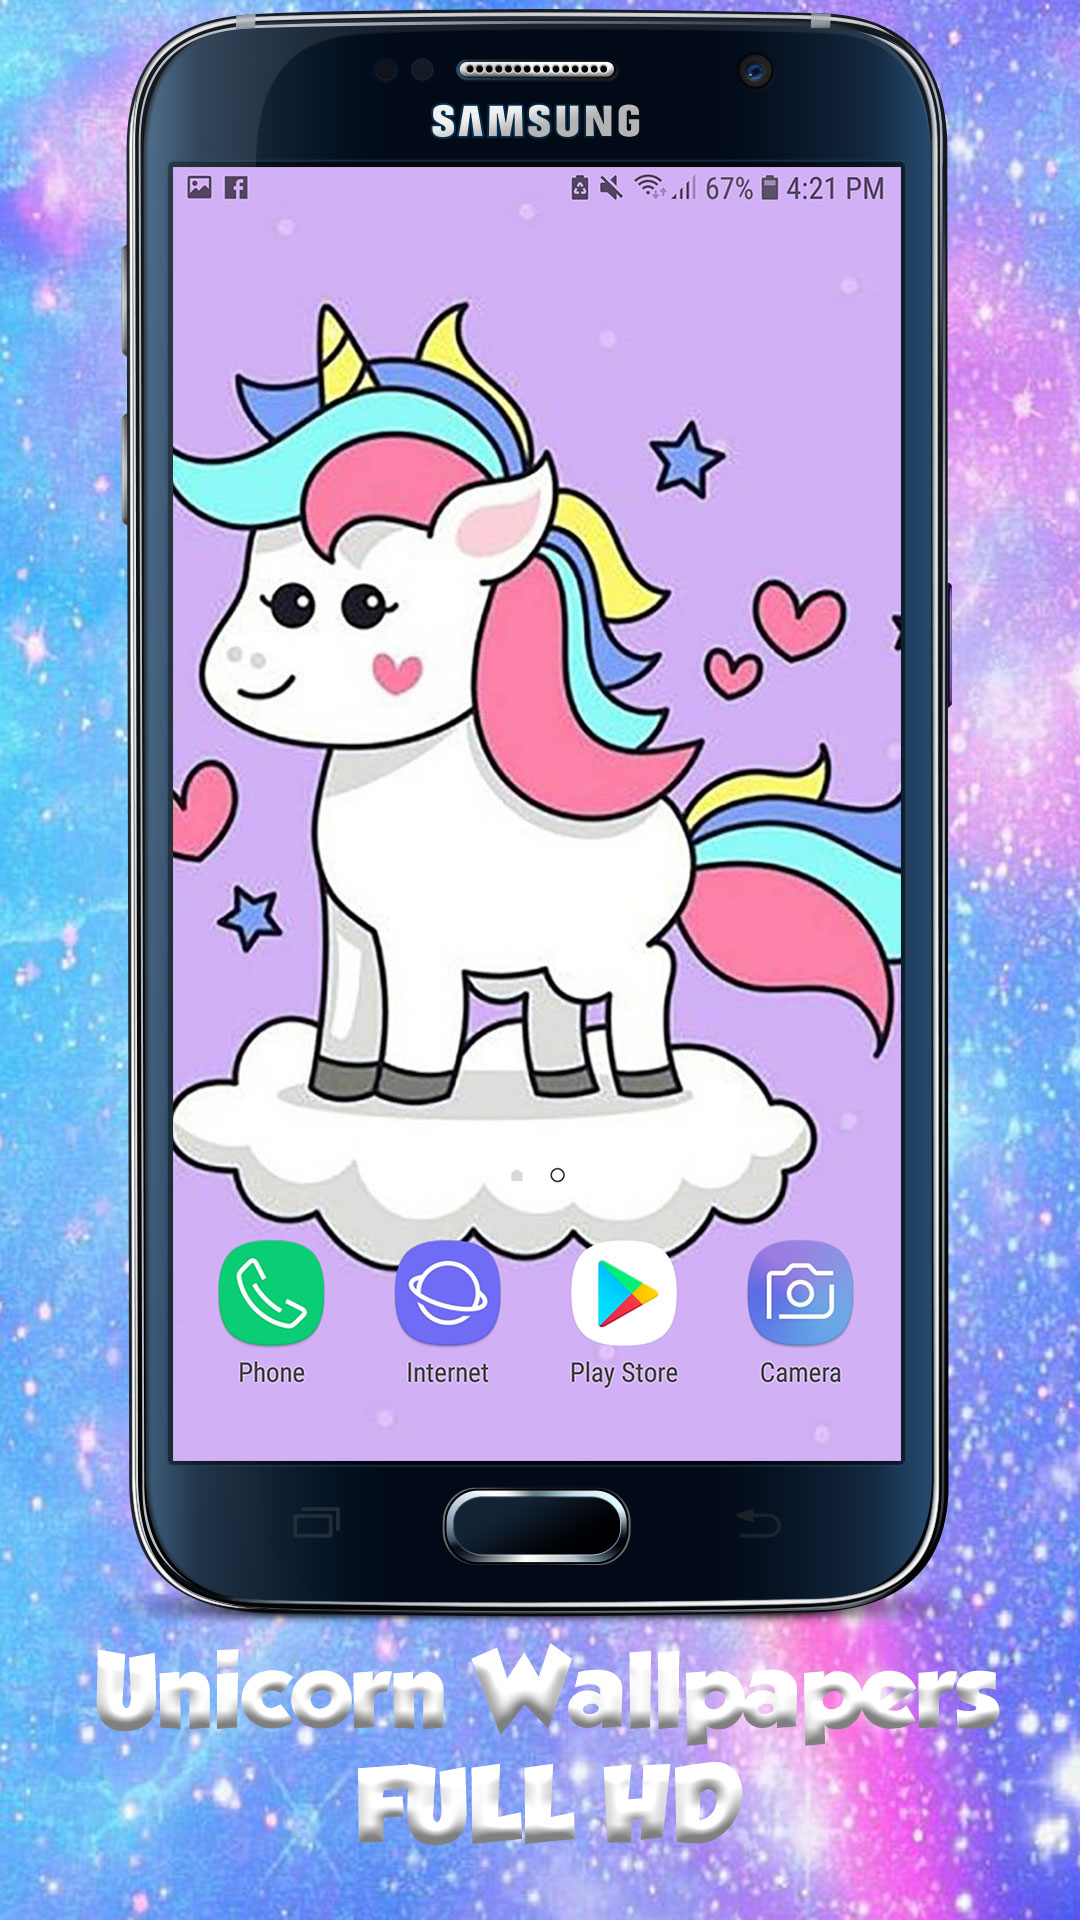 Amazon Com Amazing Kawaii Unicorns Evolution Wallpapers Free And Full Hd Unicorn Backgrounds 2019 Appstore For Android